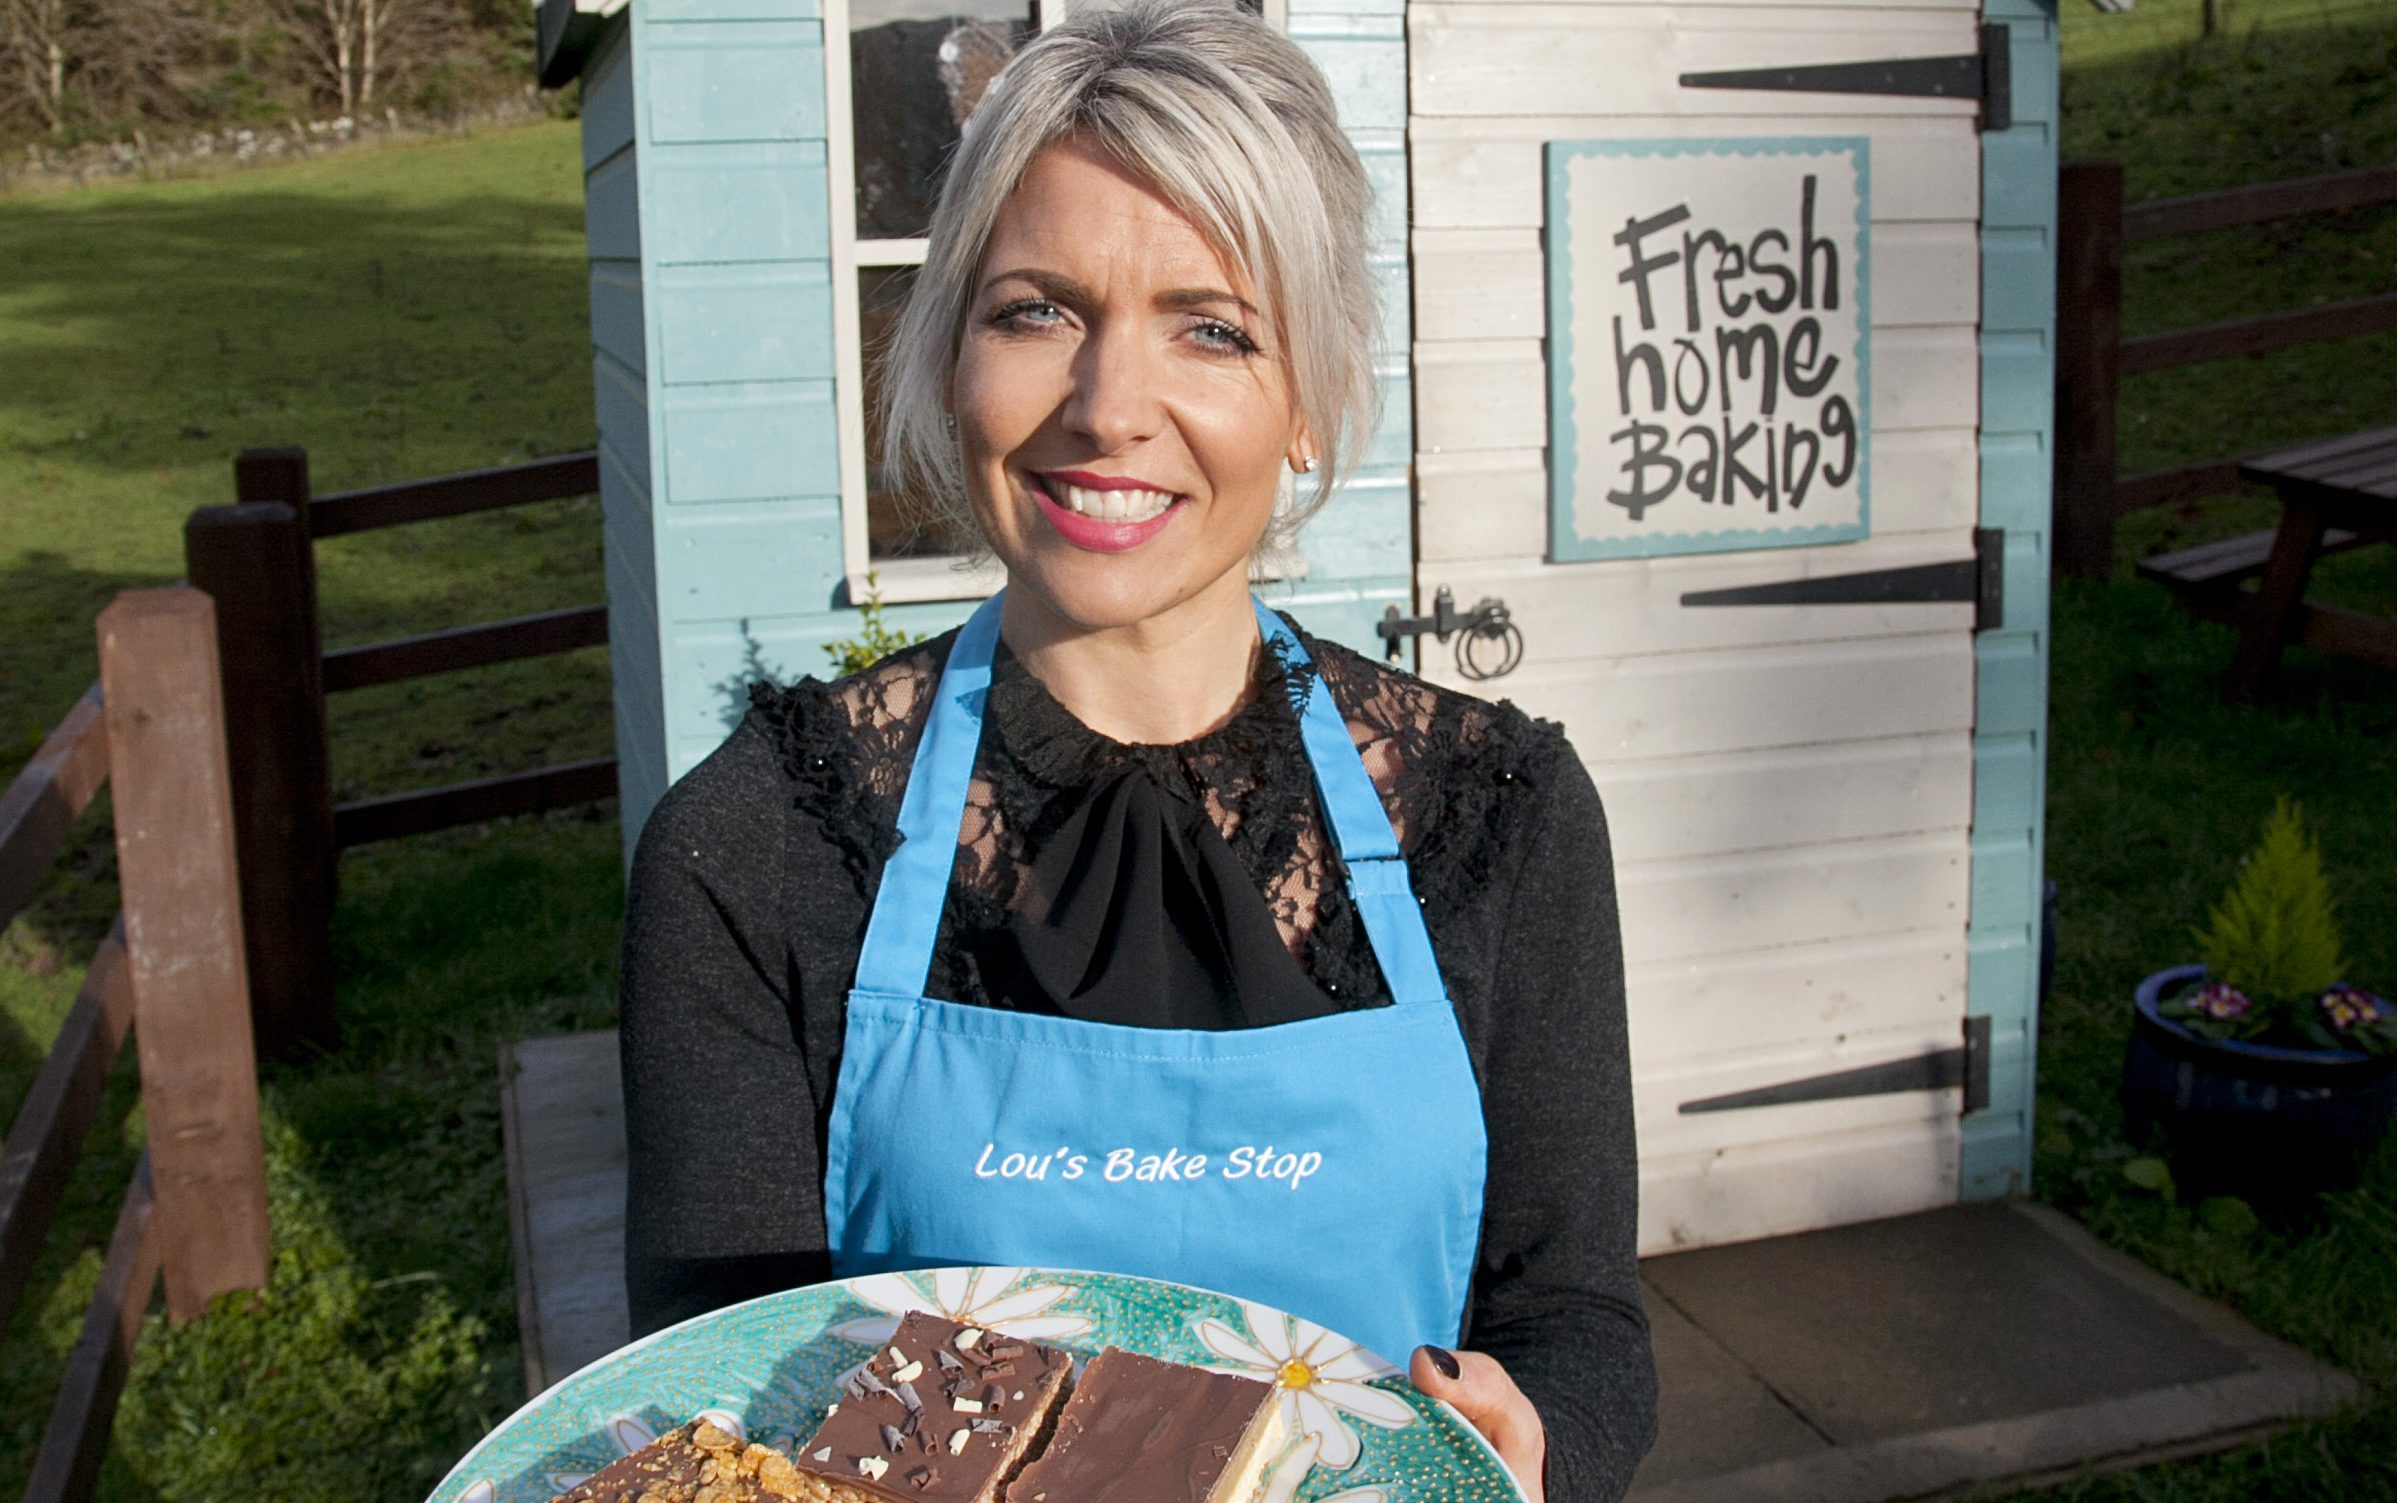 Louise Paterson at her cake hut with an honesty box, just outside Balfron (Alistair Linford)